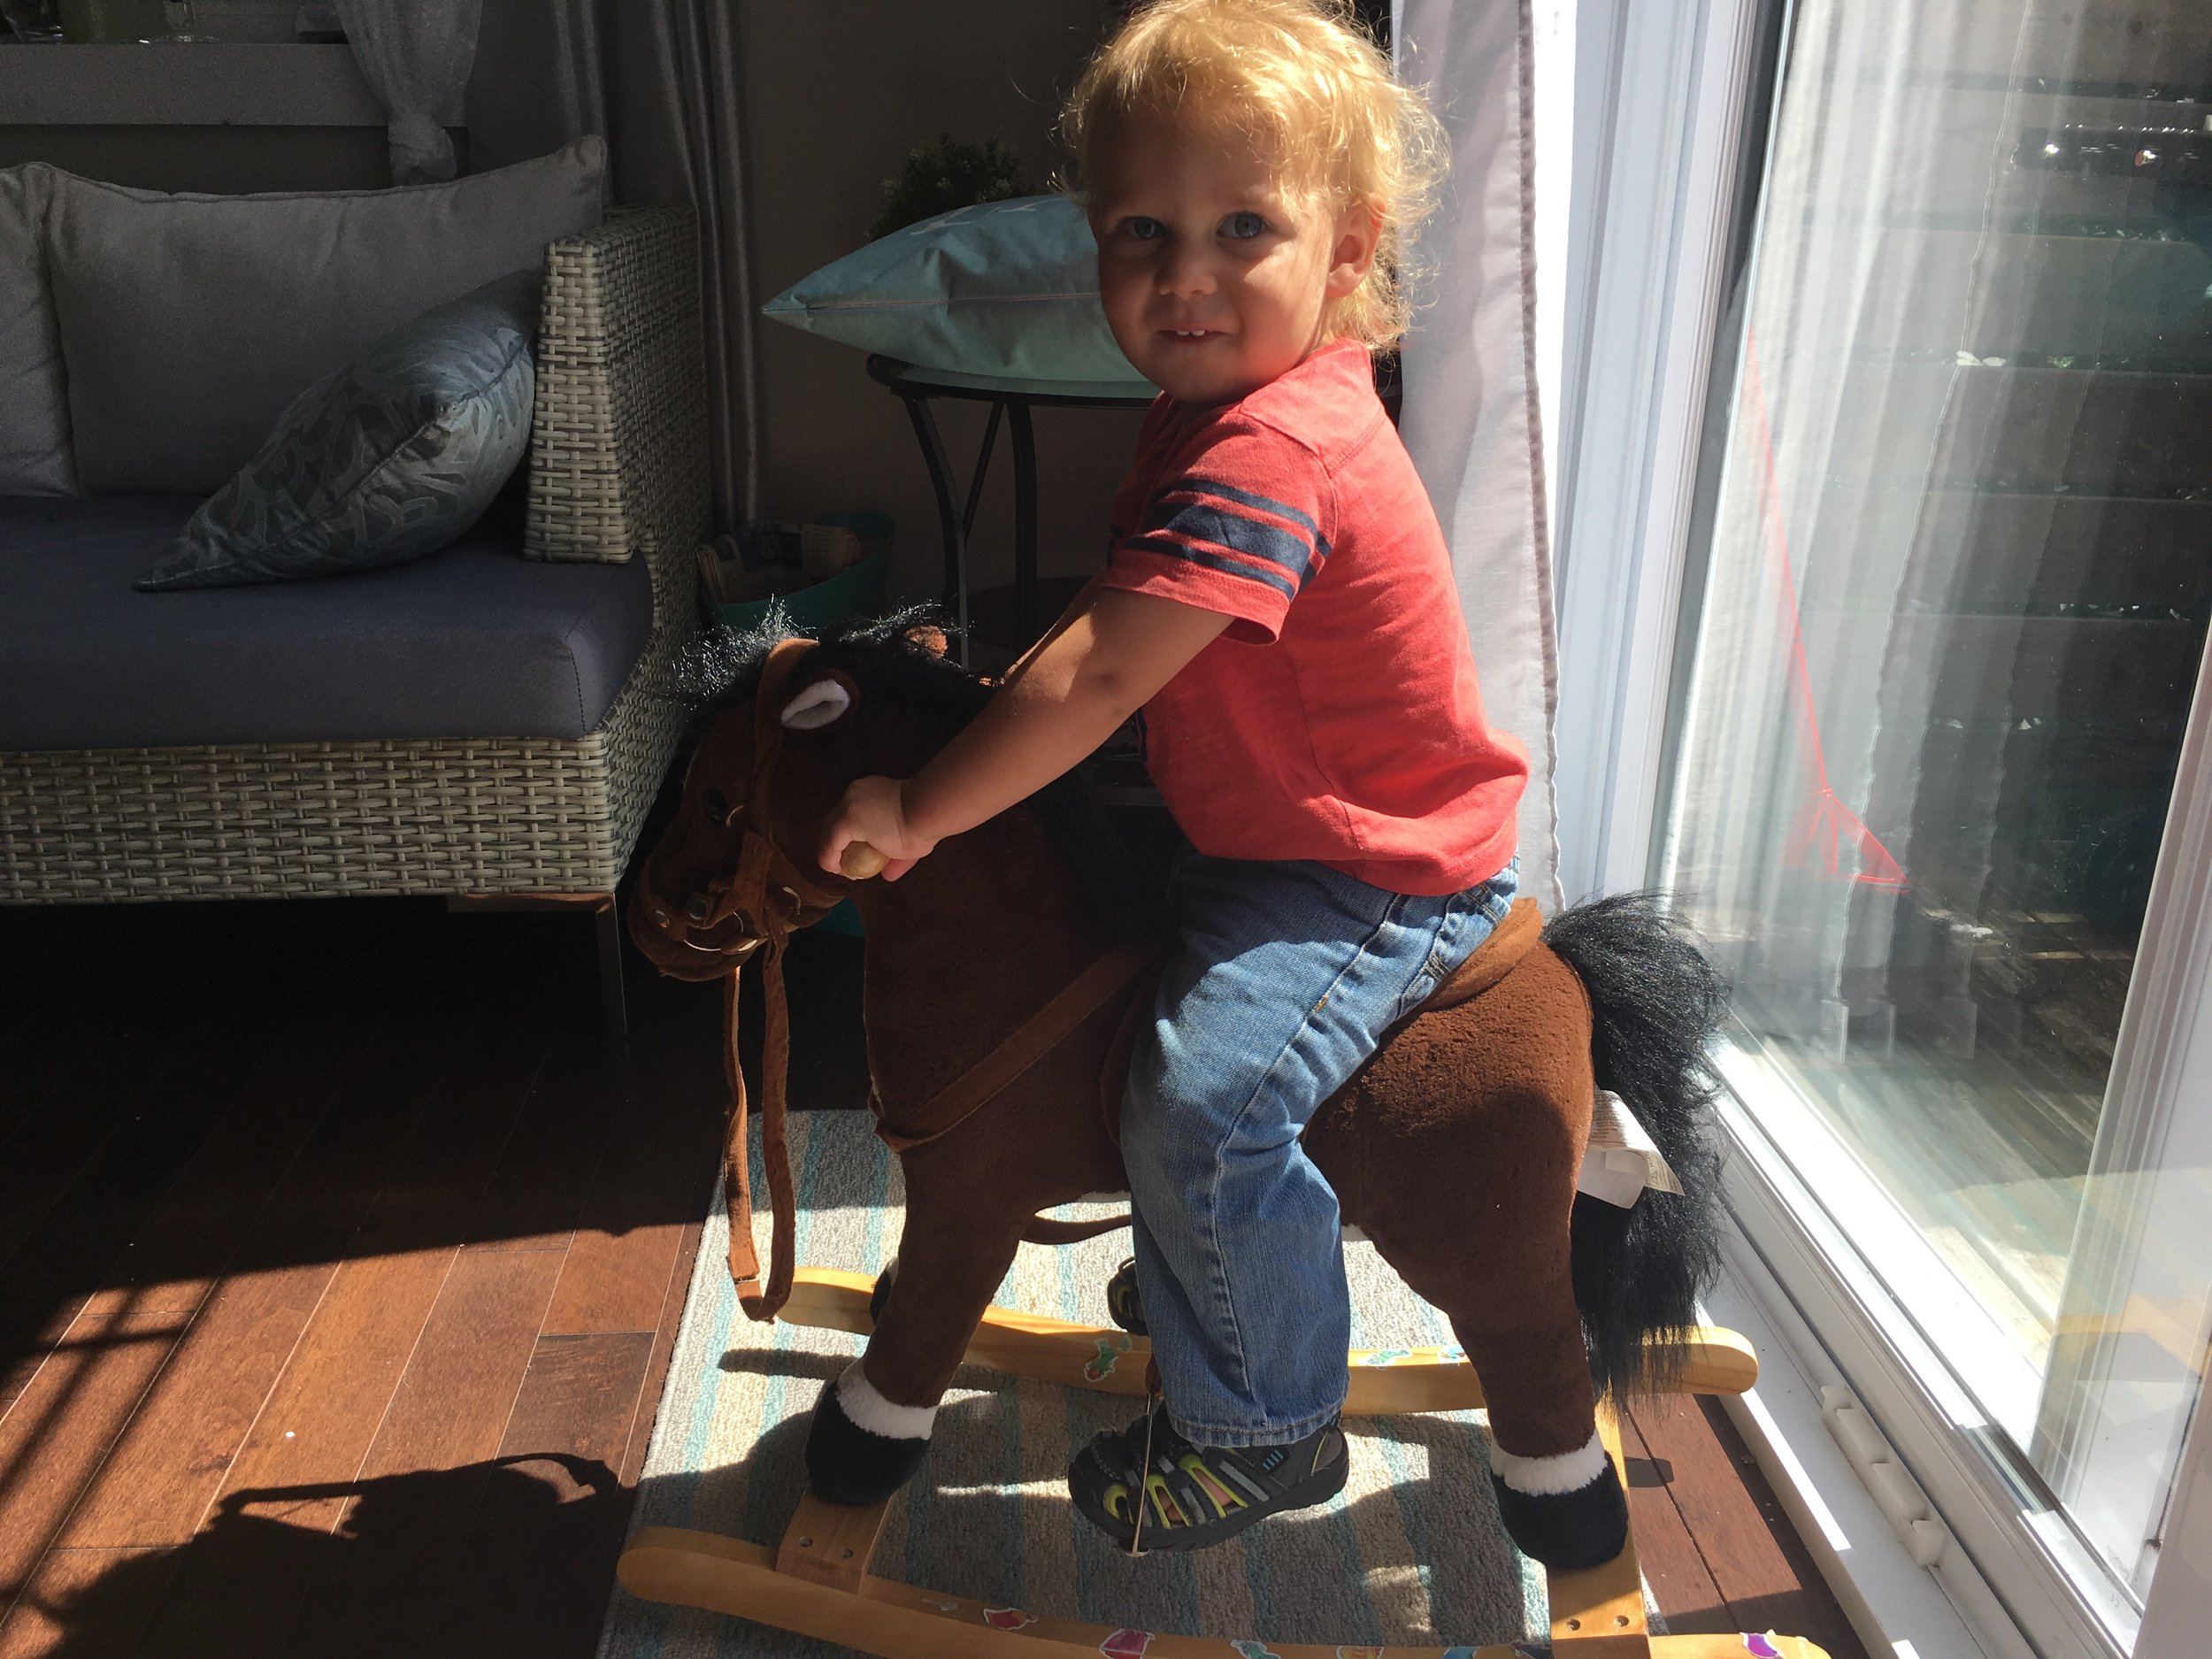 Caleb on his rocking horse, another fun find.